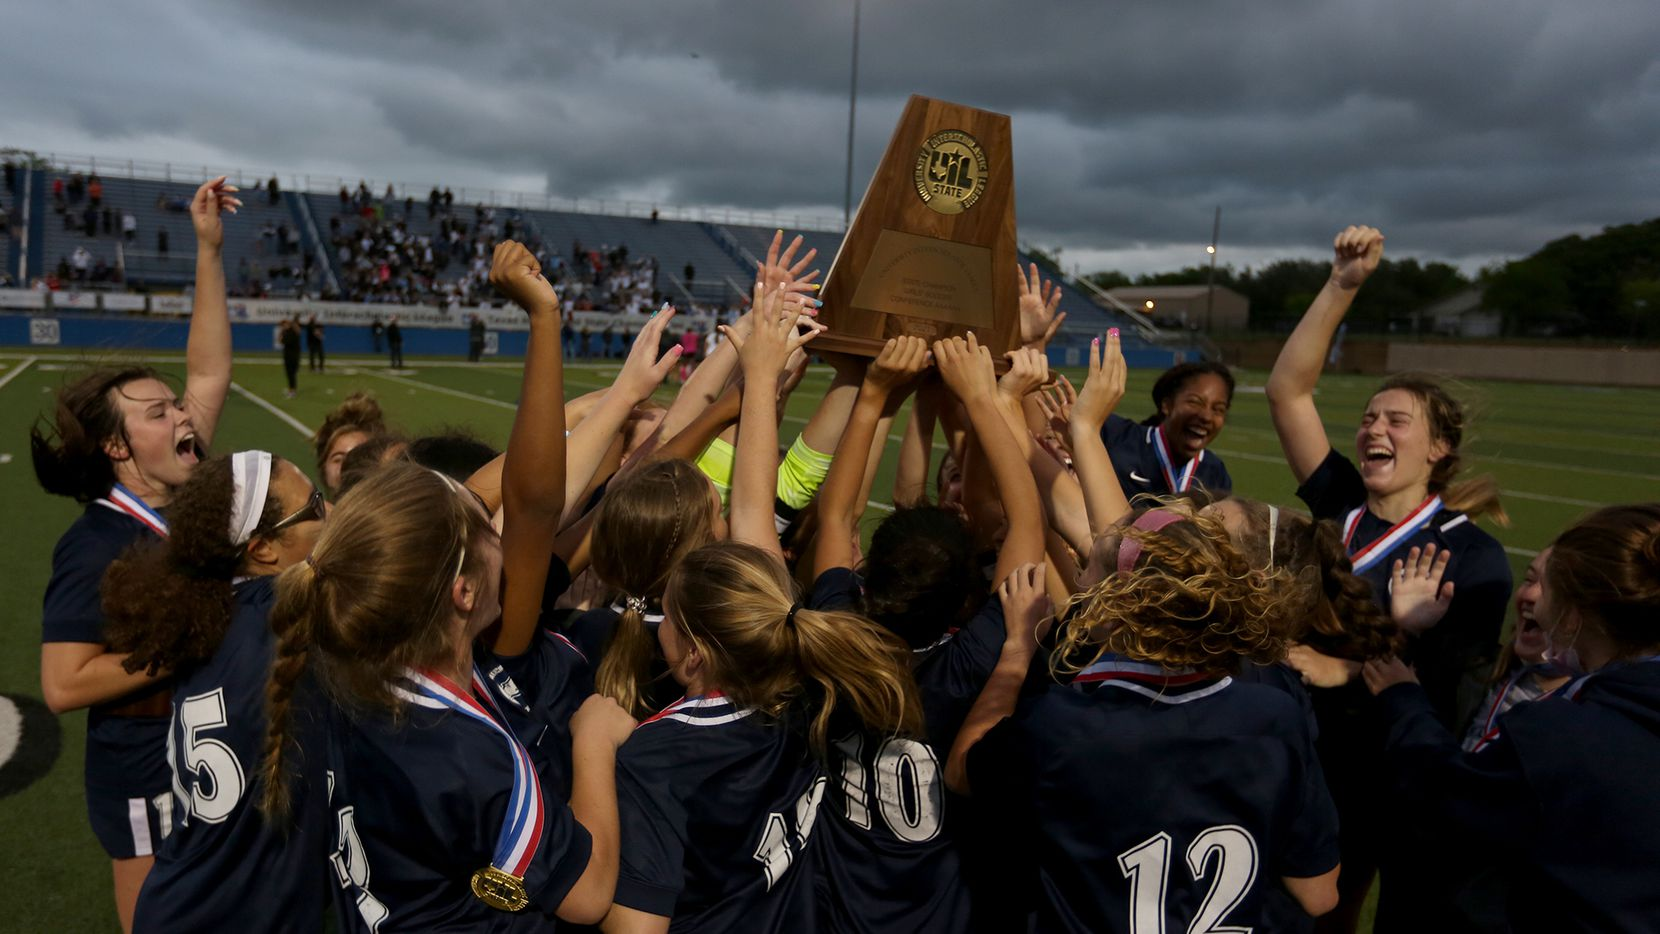 Lewisville Flower Mound players celebrate with the trophy after their UIL 6A girls State championship soccer game against Austin Vandegrift at Birkelbach Field on April 16, 2021 in Georgetown, Texas. Lewisville Flower Mound won 2-1.